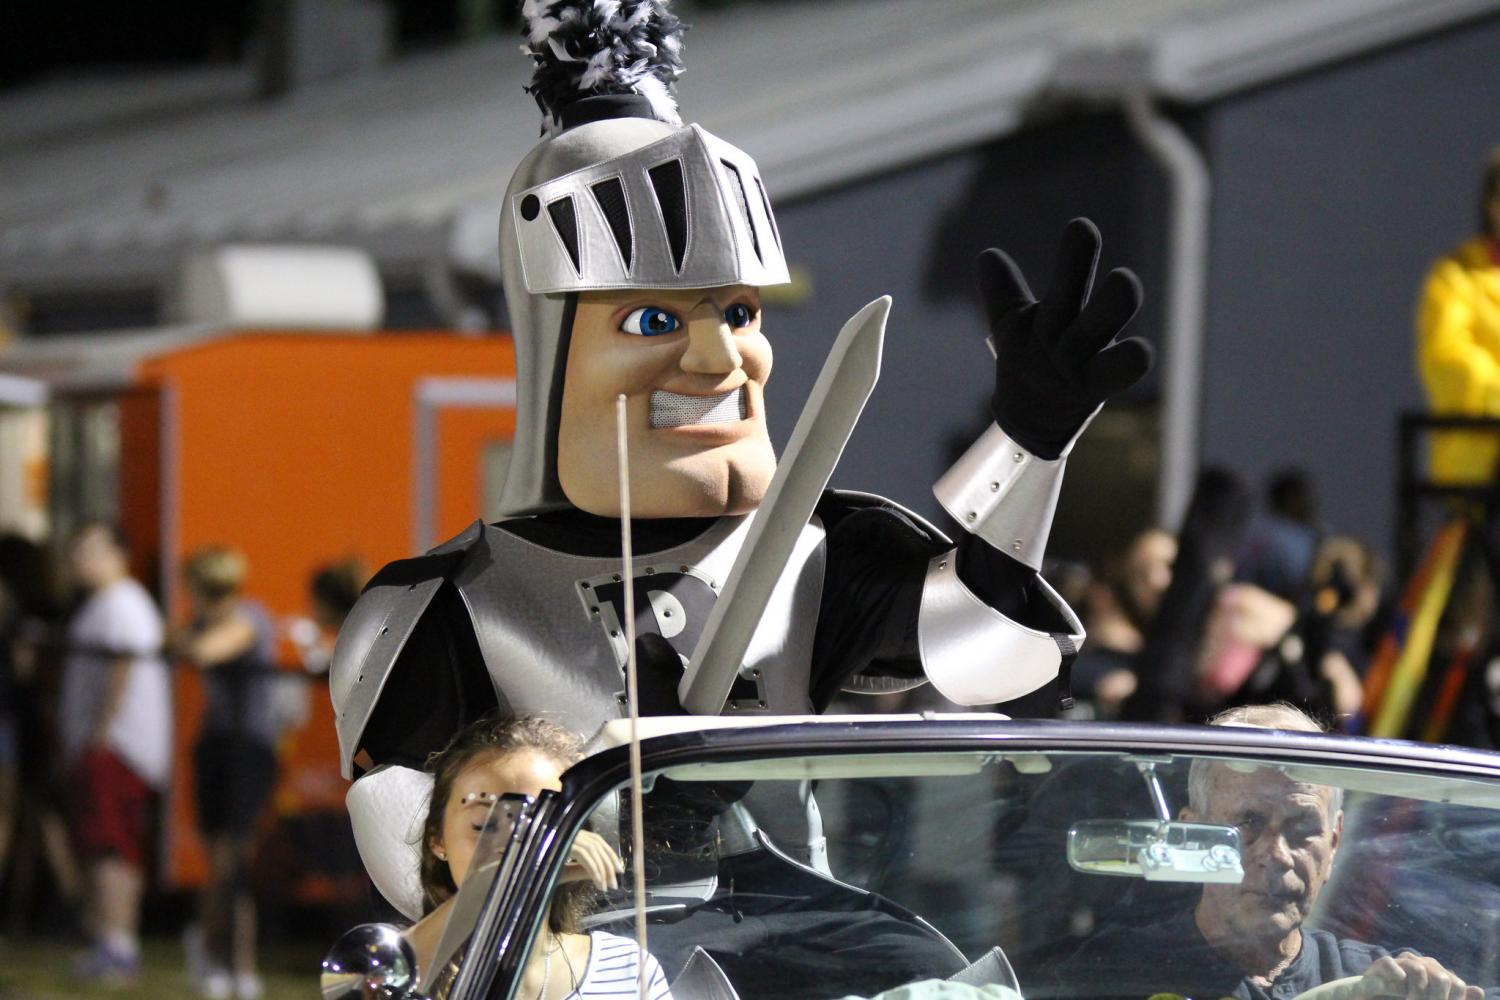 The+Knight+mascot+rides+in+a+convertible+during+the+court+presentation+at+the+2016+homecoming+game.+After+the+school+district+decides+to+cancel+school%2C+due+to+hurricane+threat%2C+administration+reschedules+homecoming+festivities.